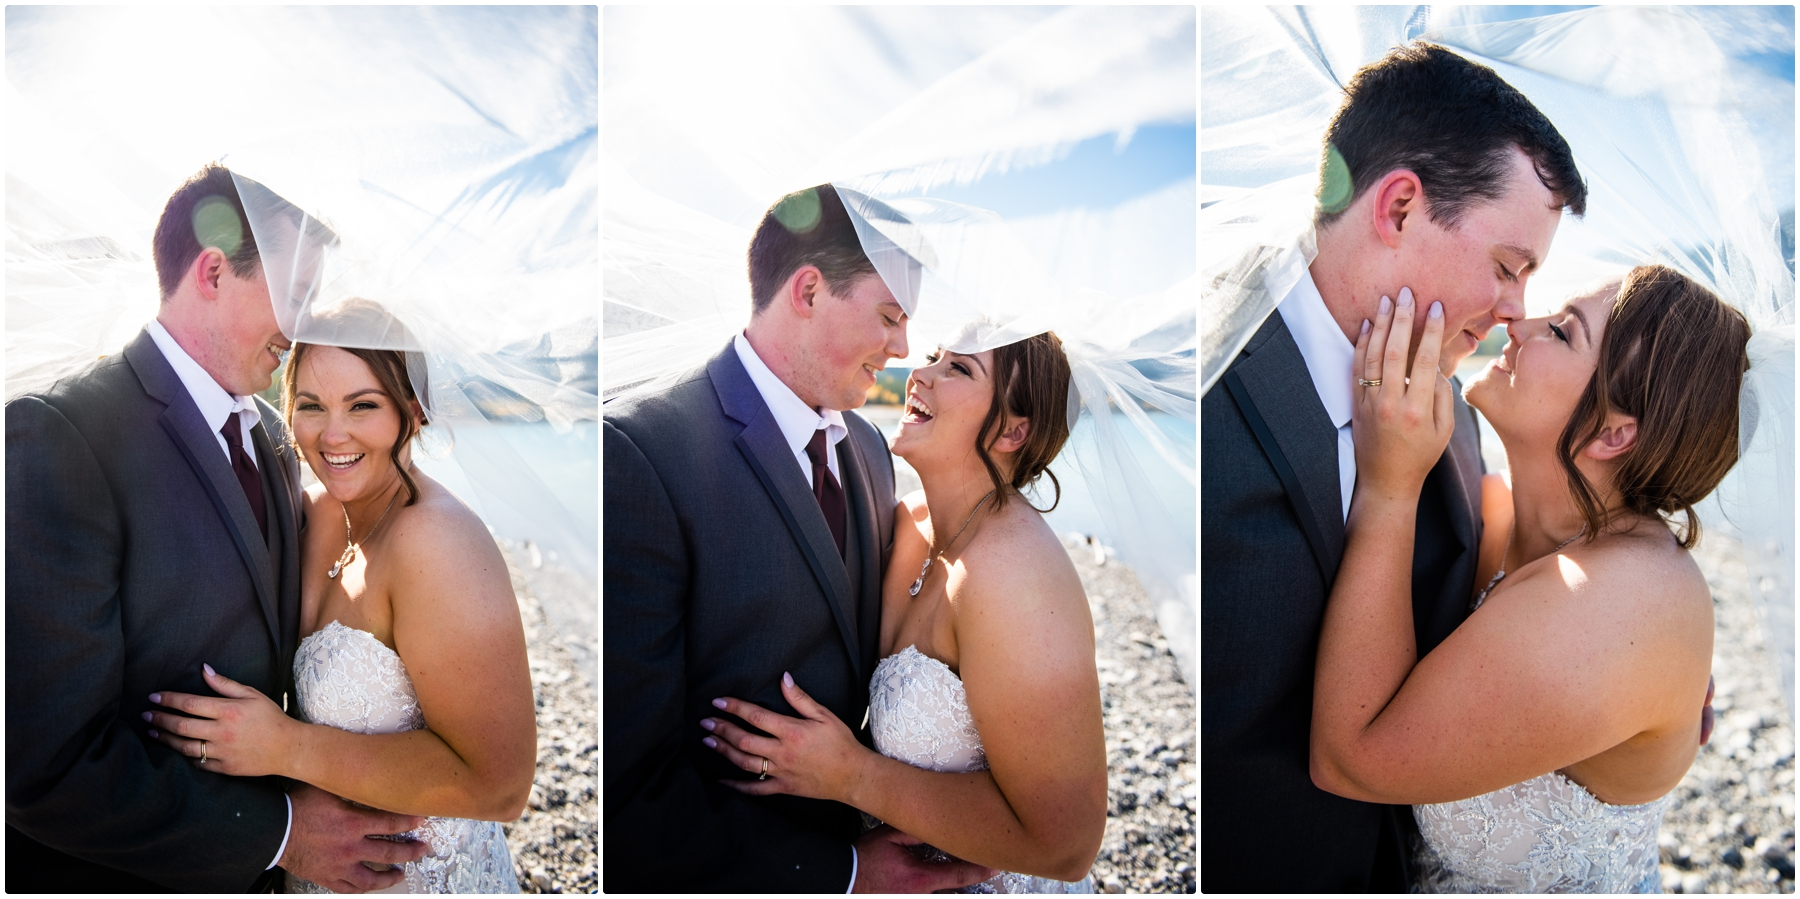 Canmore Wedding Photographer- Rocky Mountain Intimate Elopement Photographer